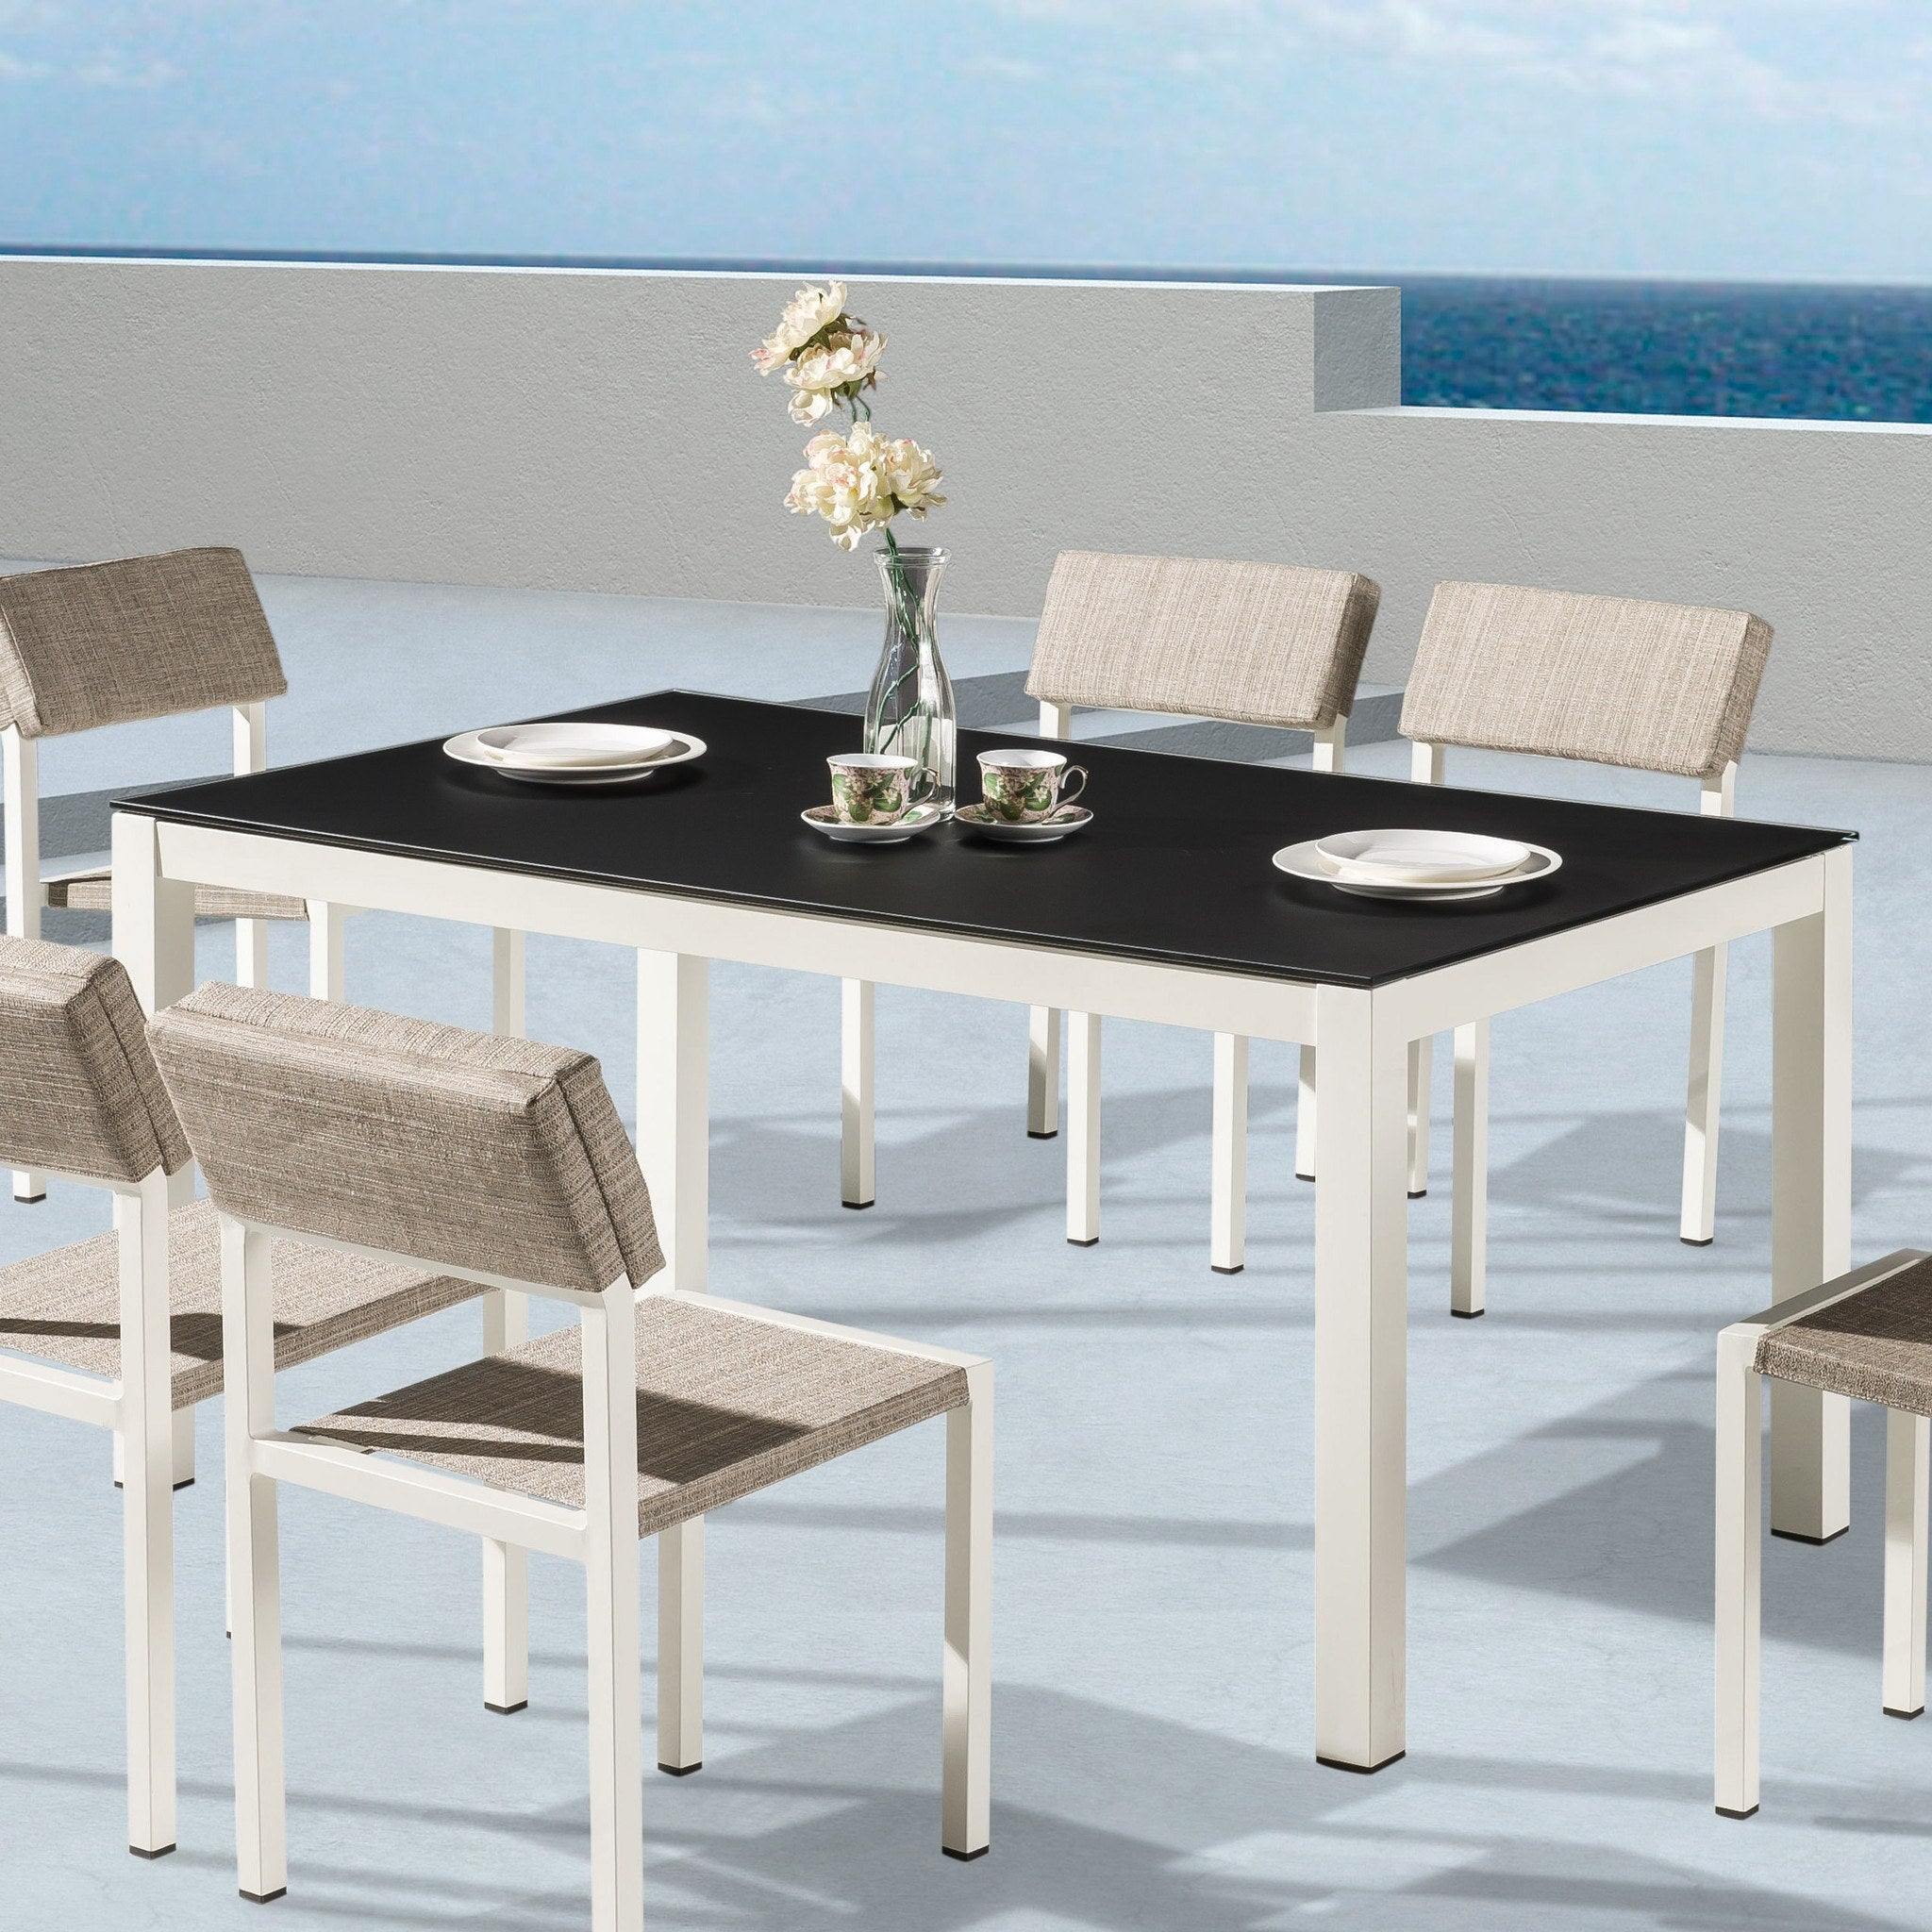 barite dining table b wfrosted glass top -